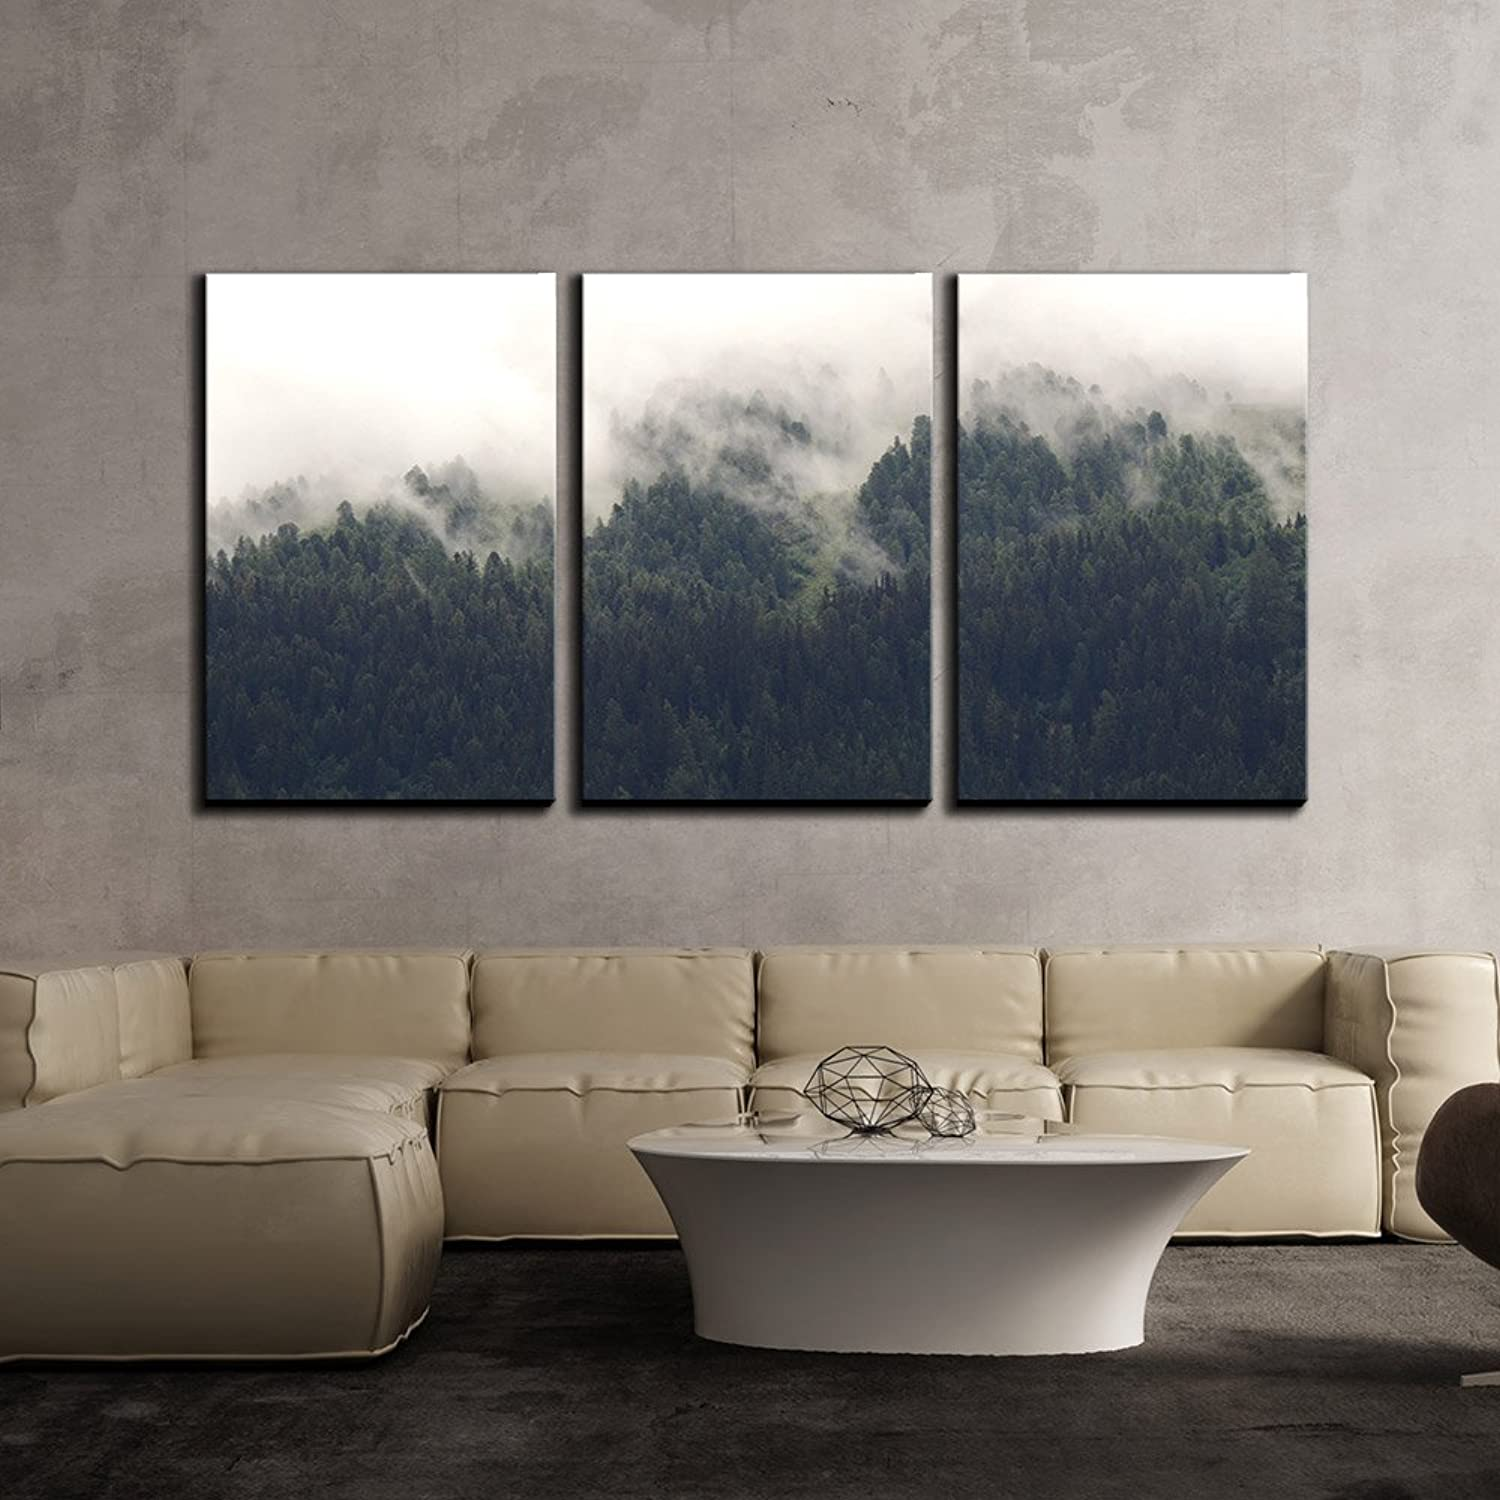 Wall26 - 3 Piece Canvas Wall Art - Landscape of Trees Forest in Mist - Modern Home Decor Stretched and Framed Ready to Hang - 24 x36 x3 Panels